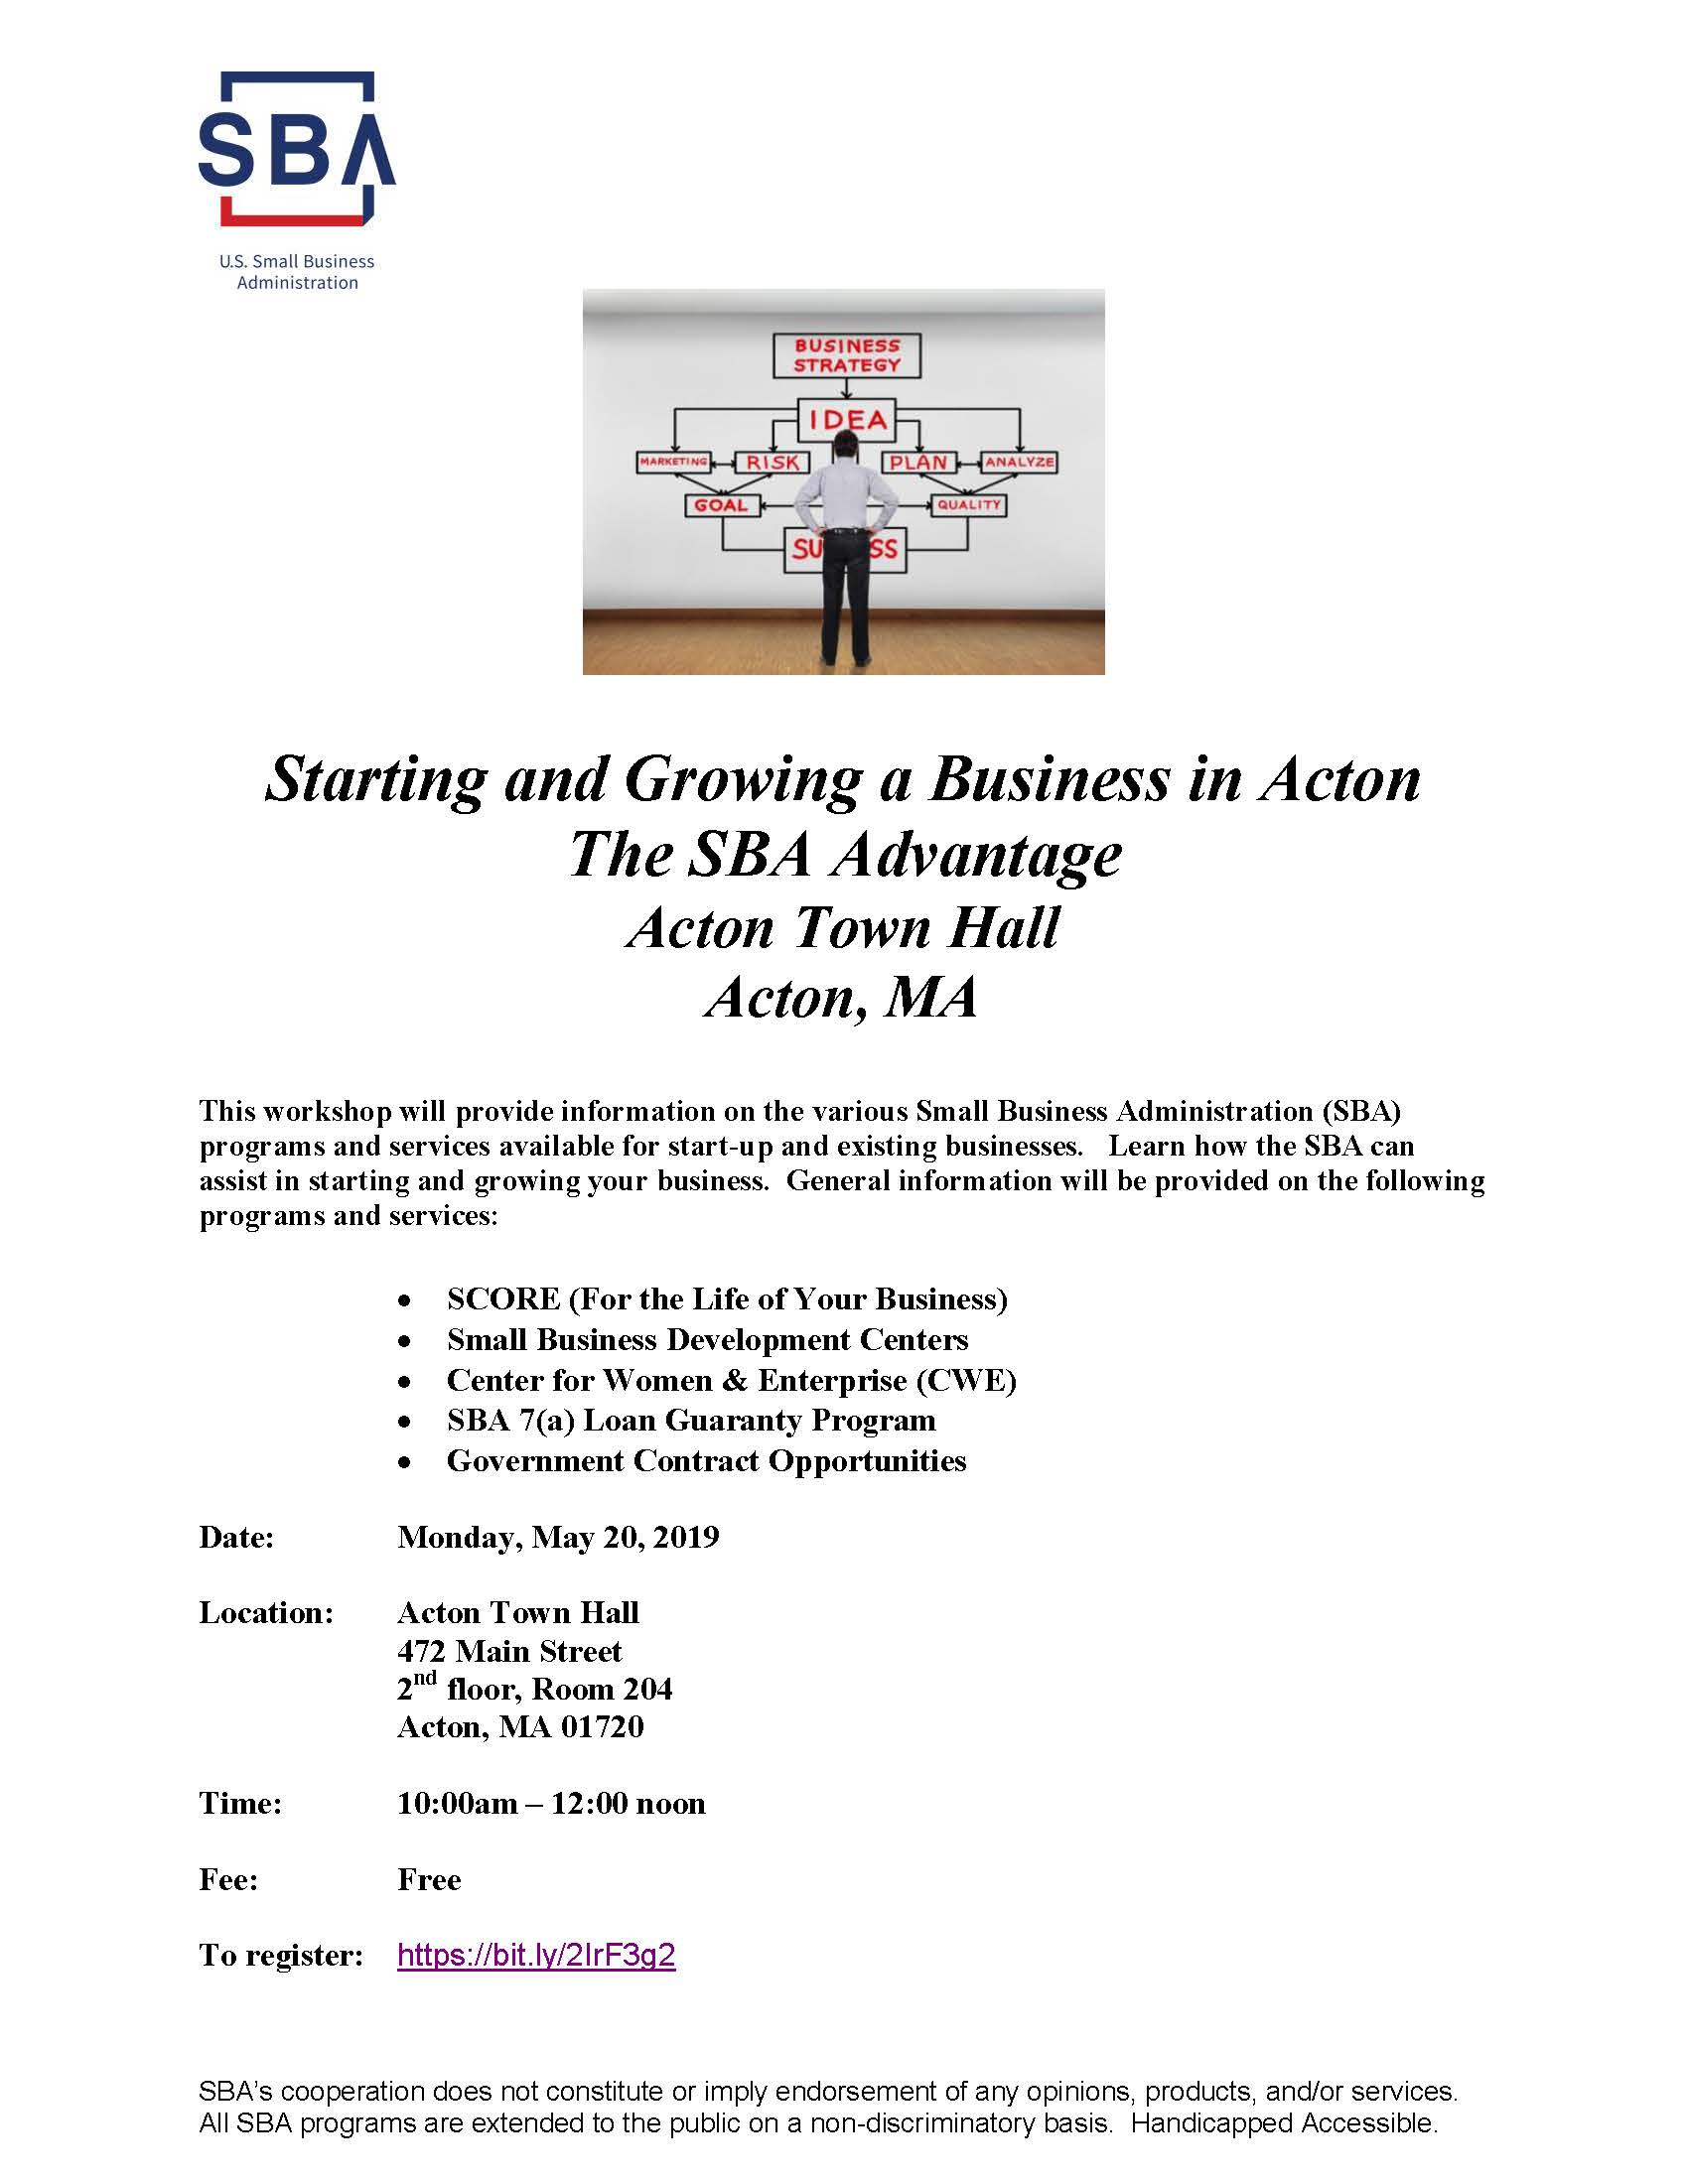 SBA Workshop at Acton Town Hall May 20